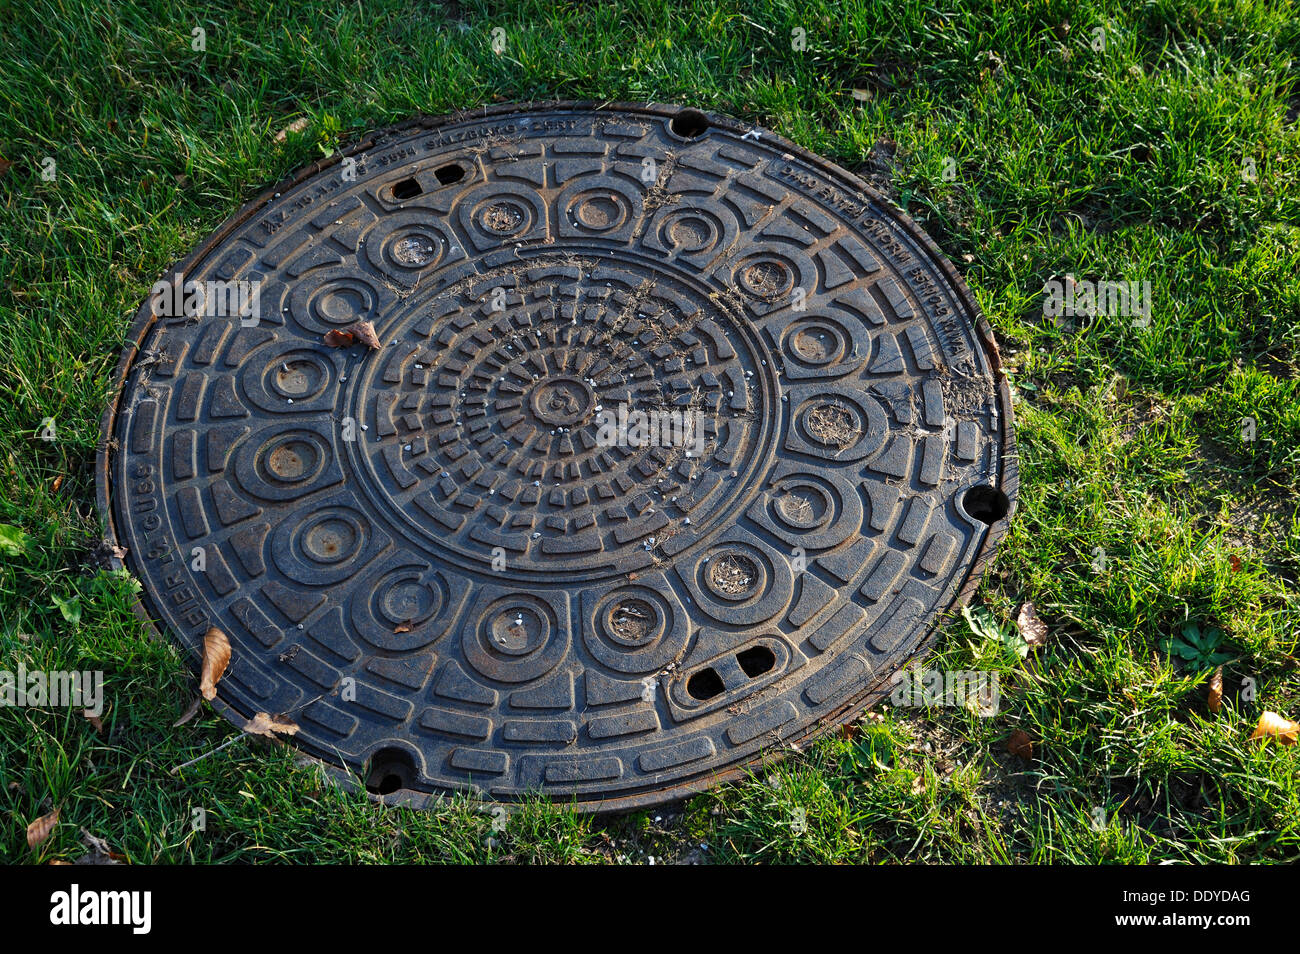 Manhole cover in the Ostfriedhof or East Cemetery, Munich, Bavaria - Stock Image